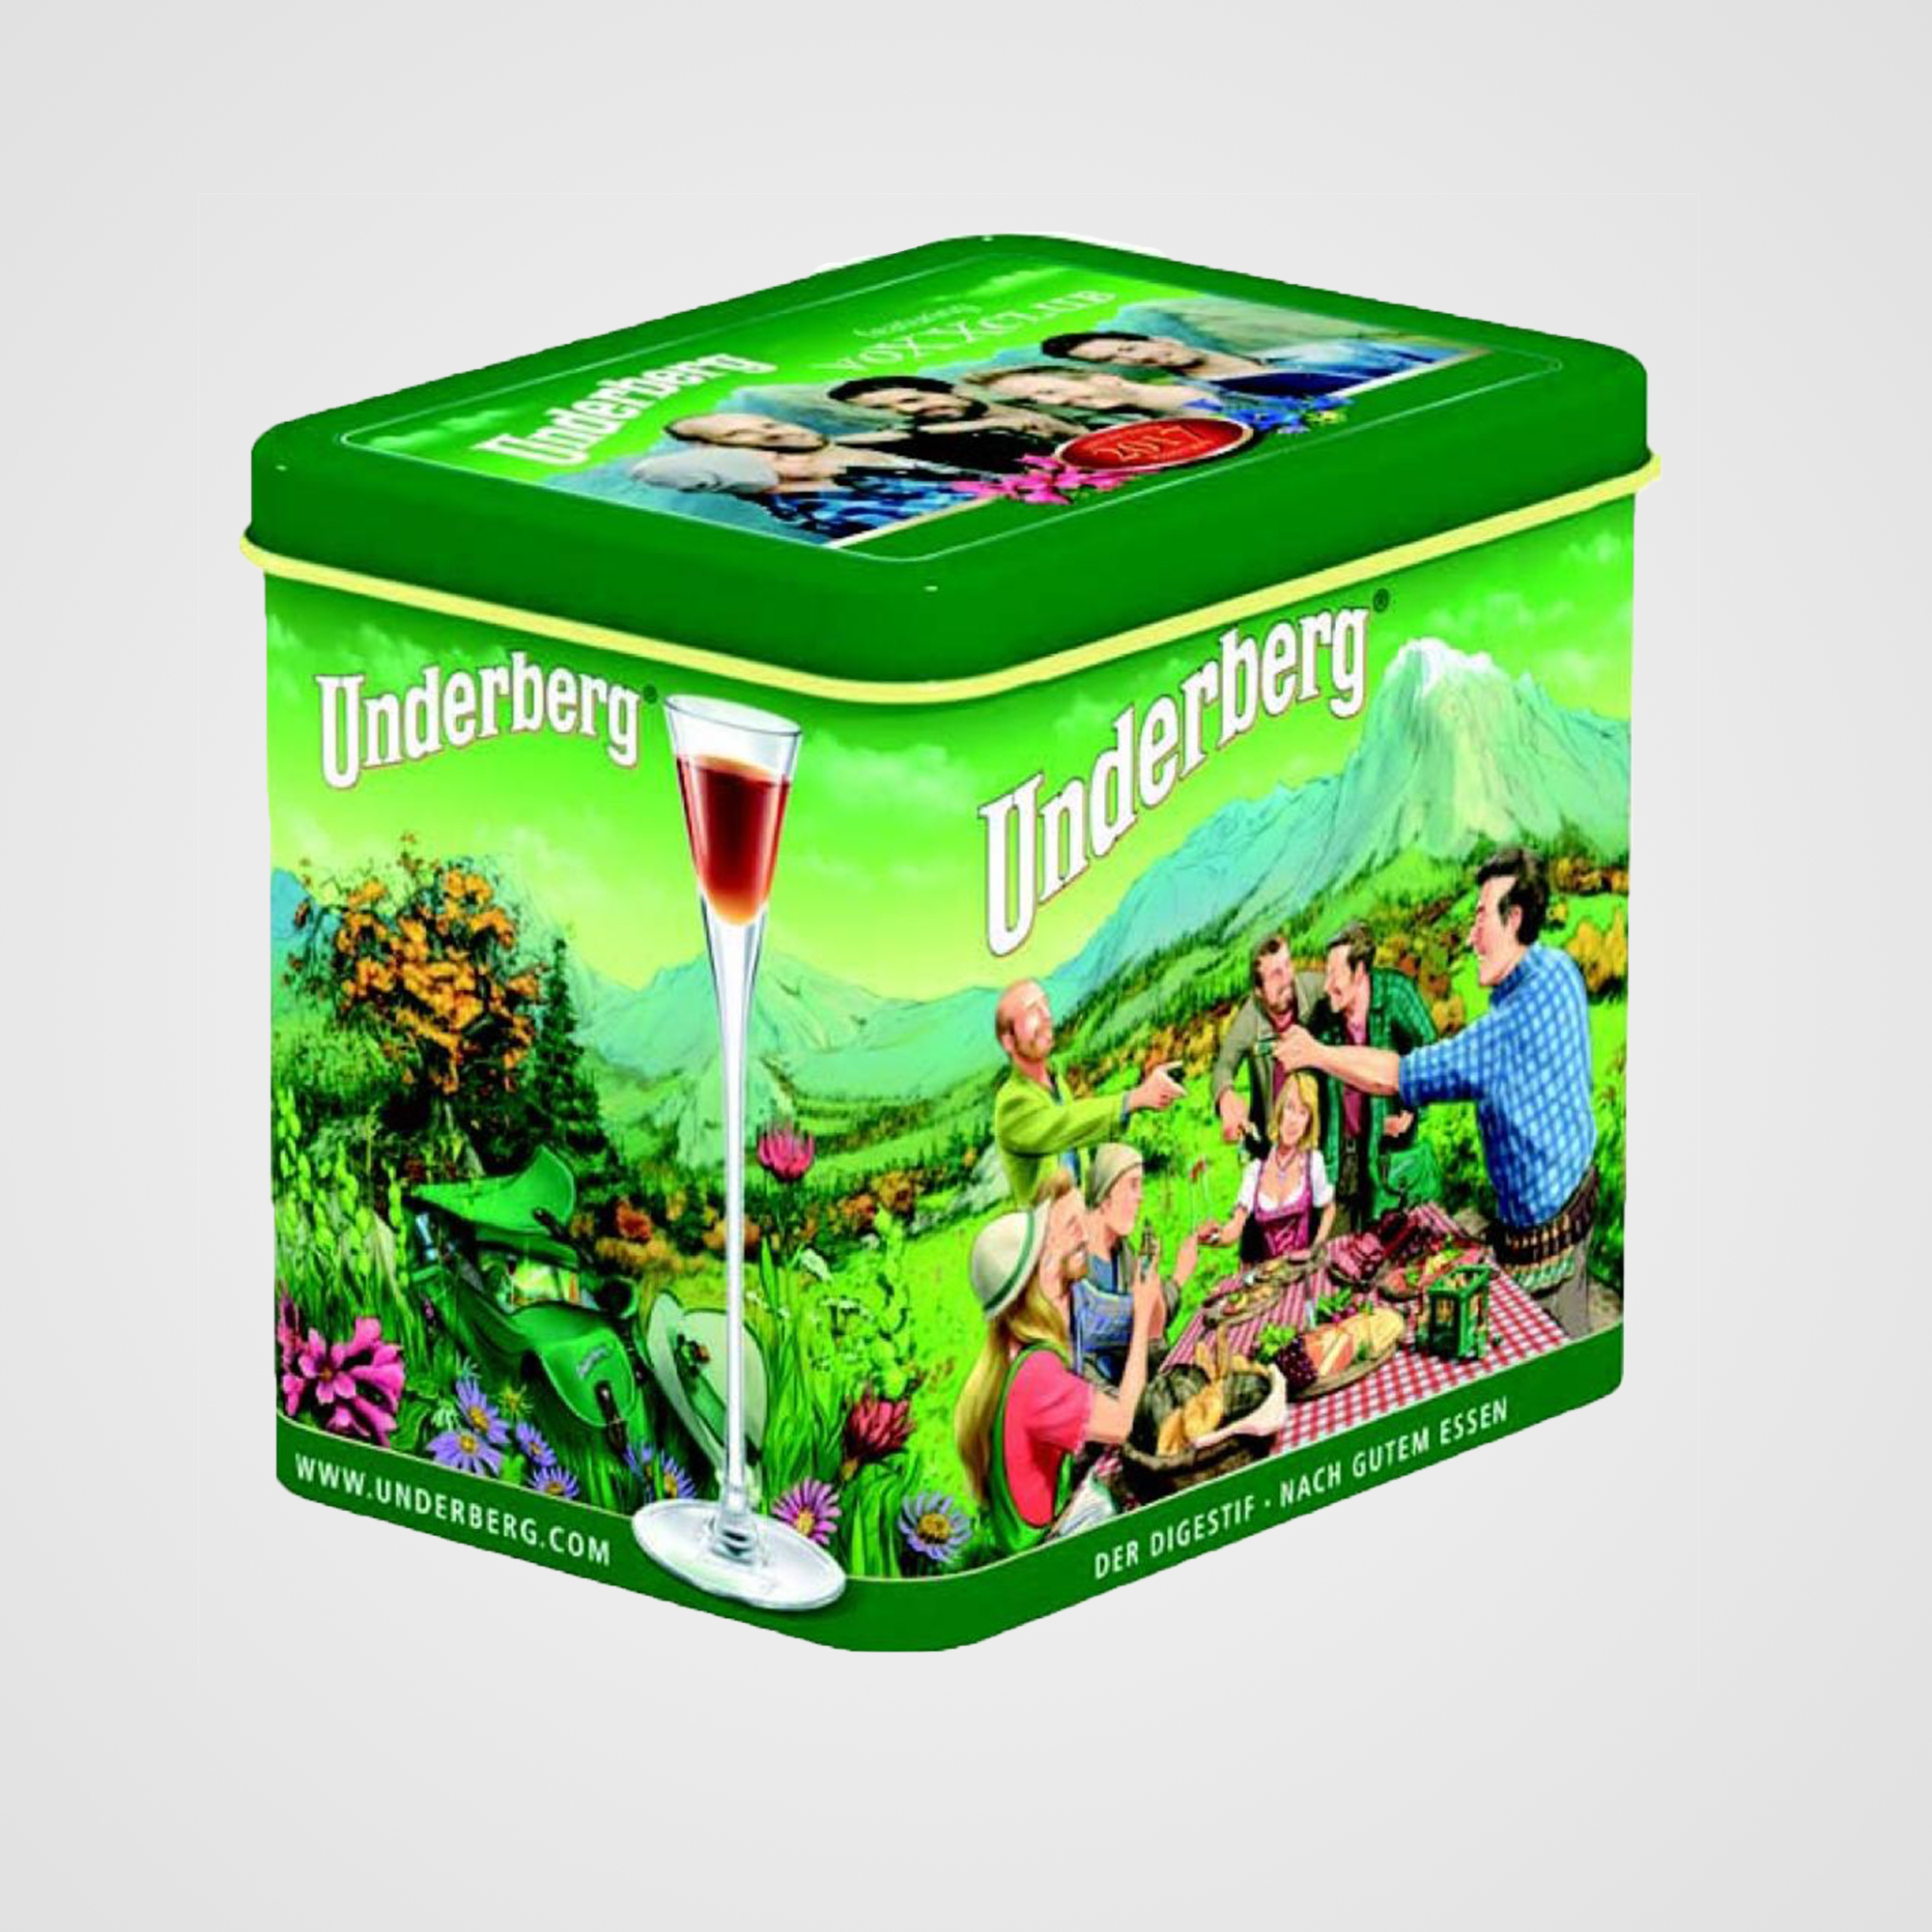 Gift Tin (12 Bottles) - Underberg 2019 Gift Tin - 12 Bottles comes packaged in a 2019 collectible tin containing 12 single portion bottles of Underberg.Each Bottle is 20 ml. / 67 fl oz.Net Weight: 240 ml. / 8.04 fl oz.Country of Origin: Germany